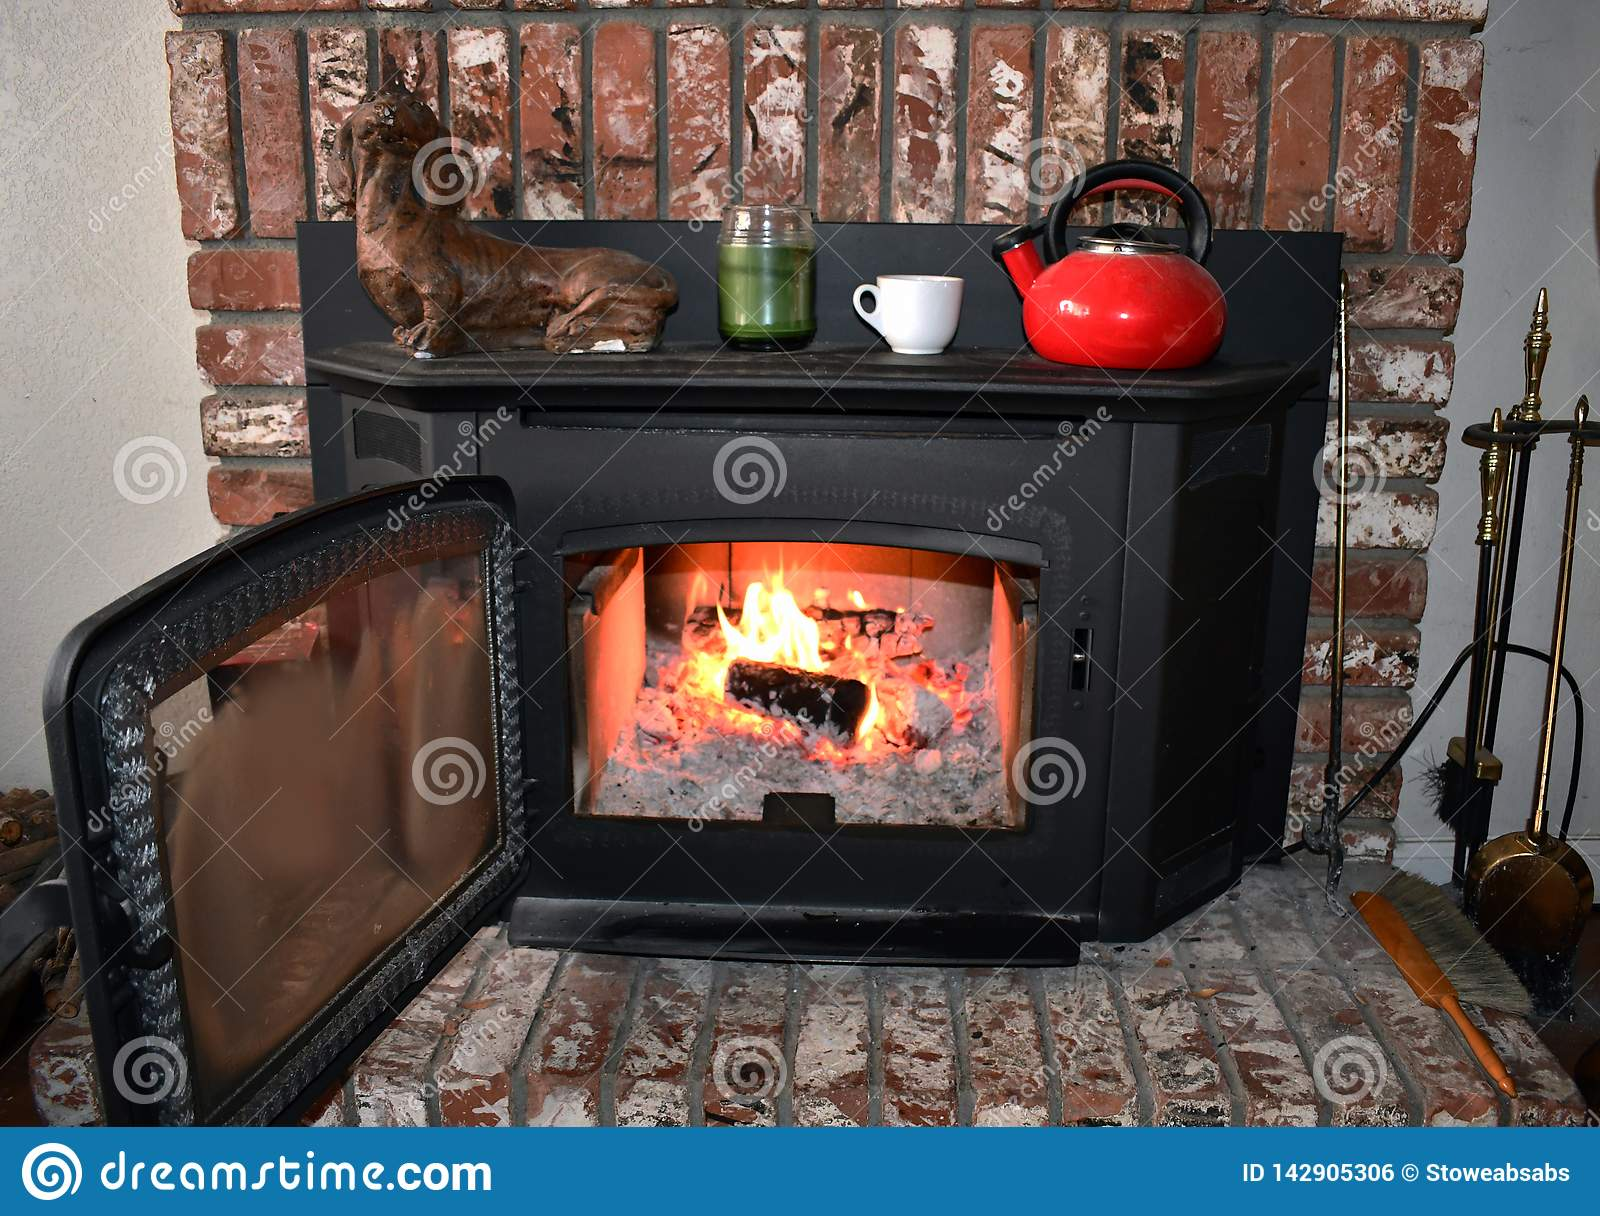 Fire in brick fireplace and mantle inside a cozy family room